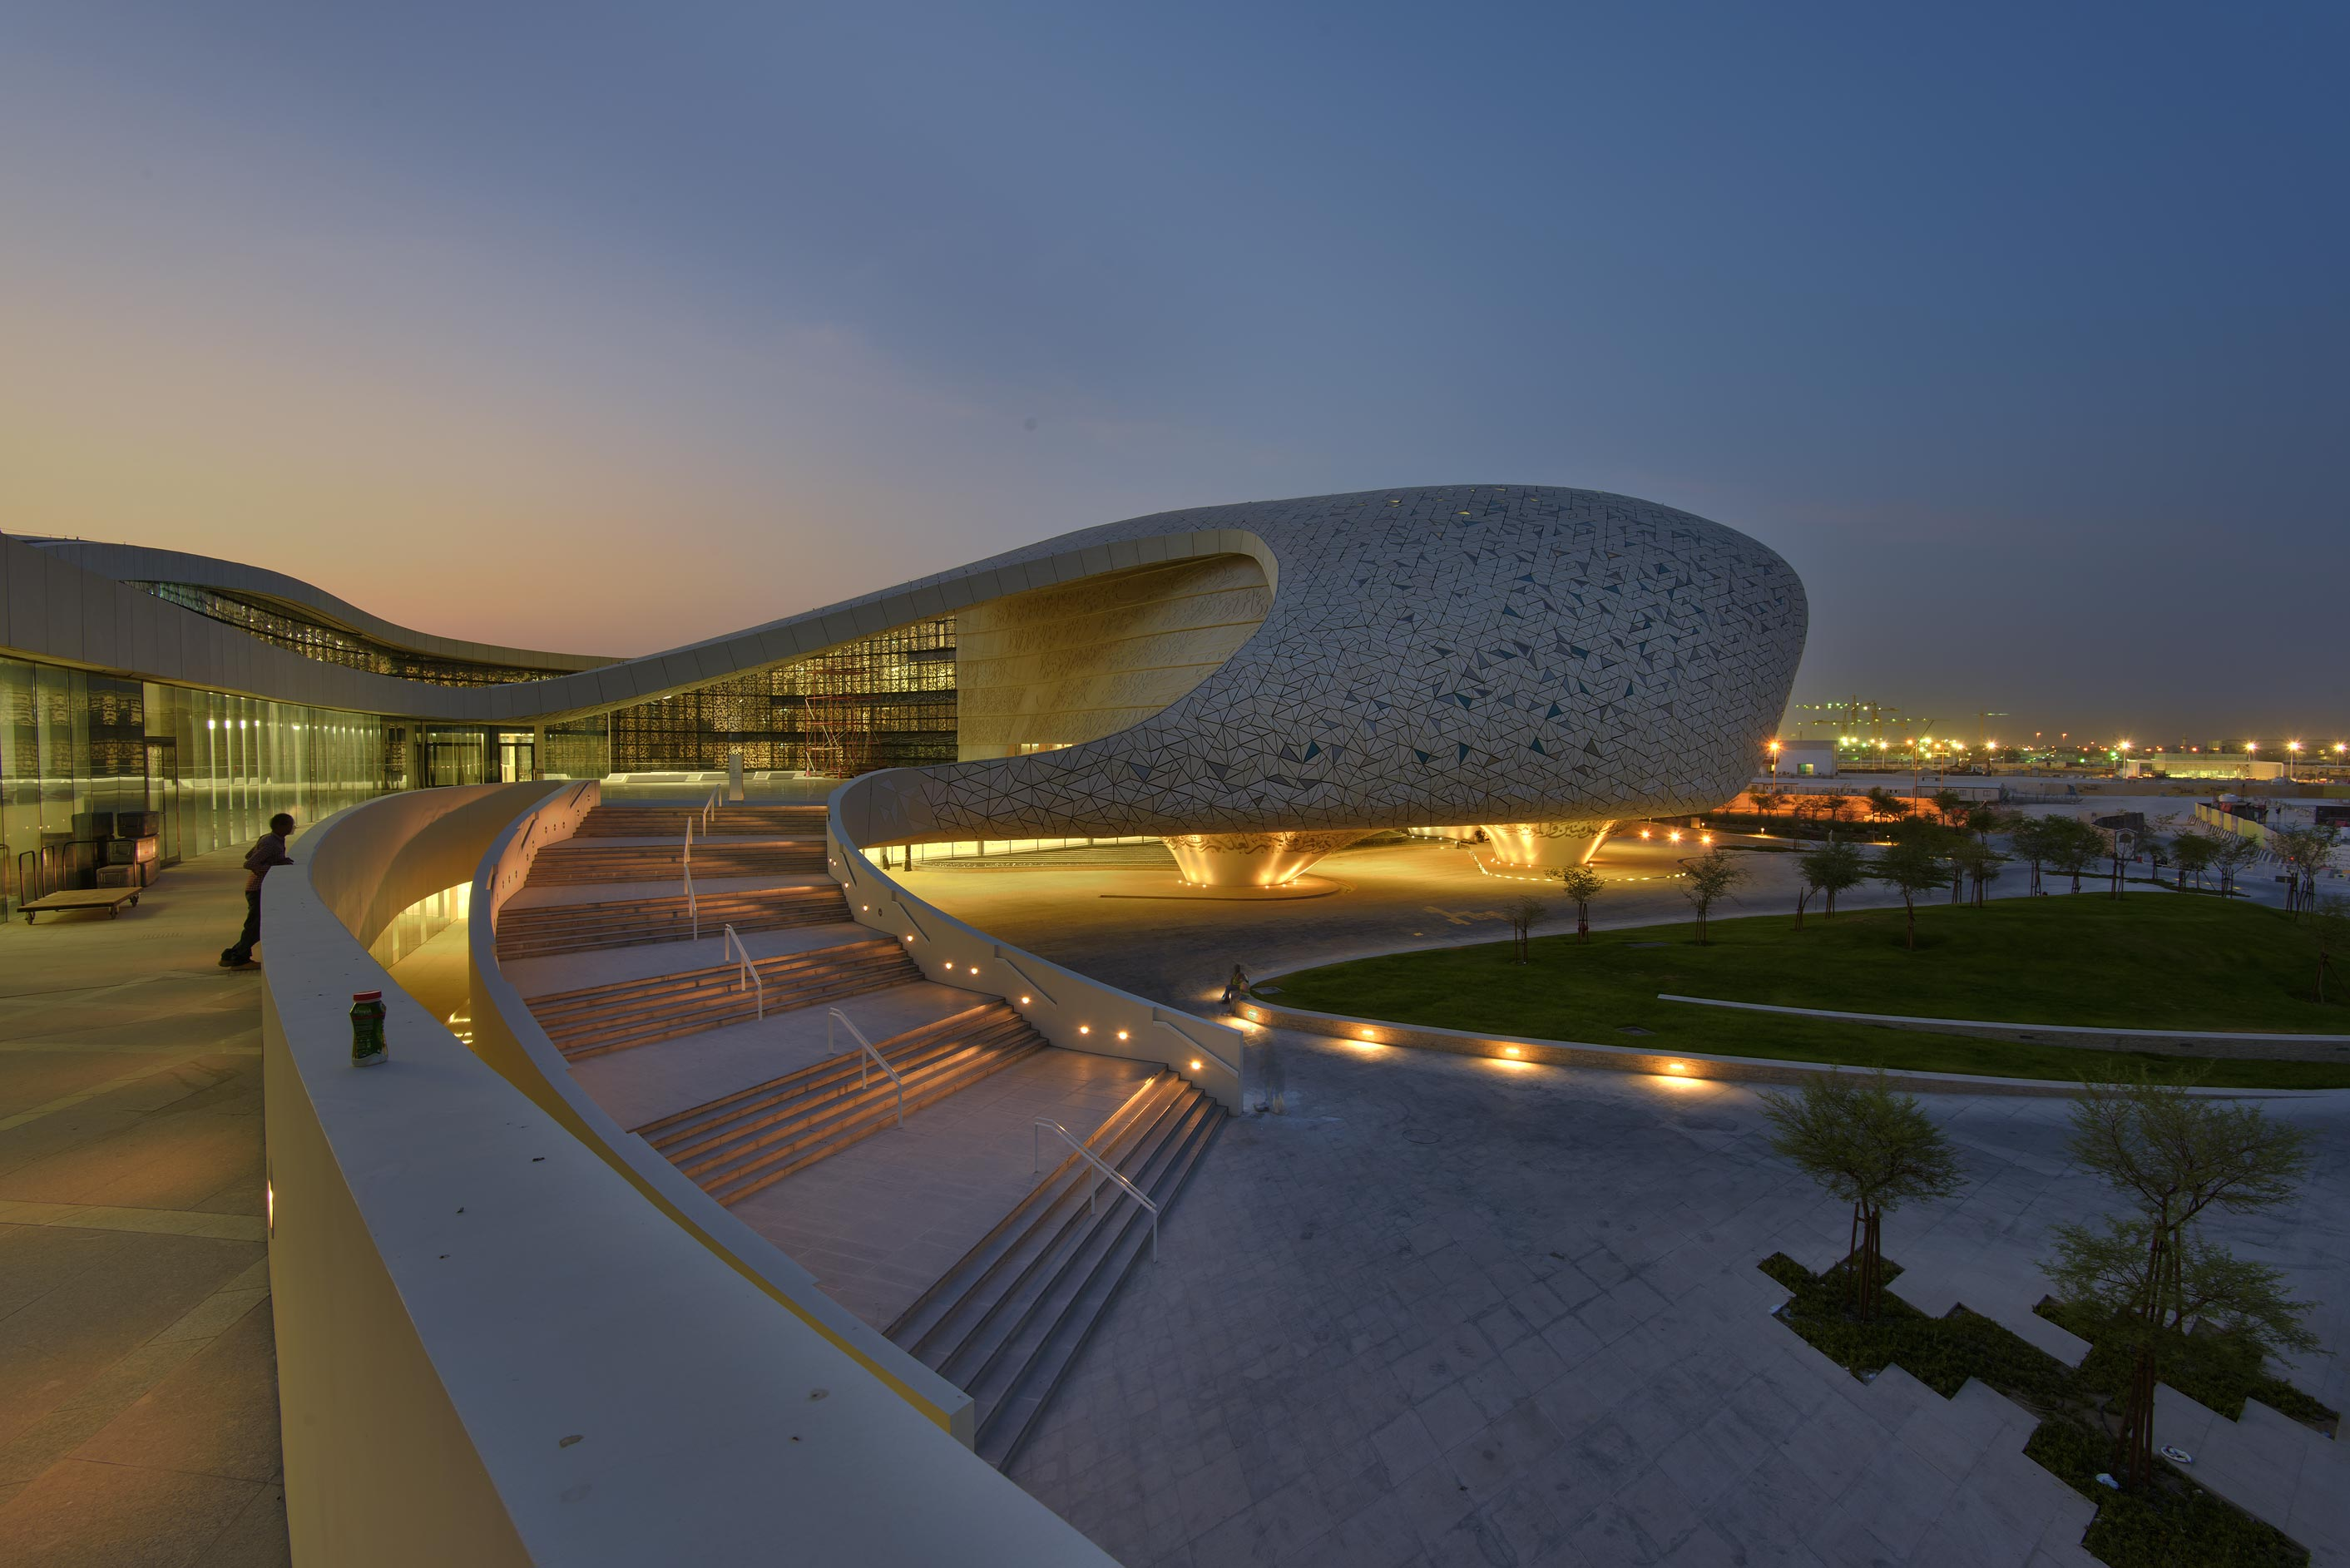 Grand staircase and cavernous building from the...of Education City Mosque. Doha, Qatar